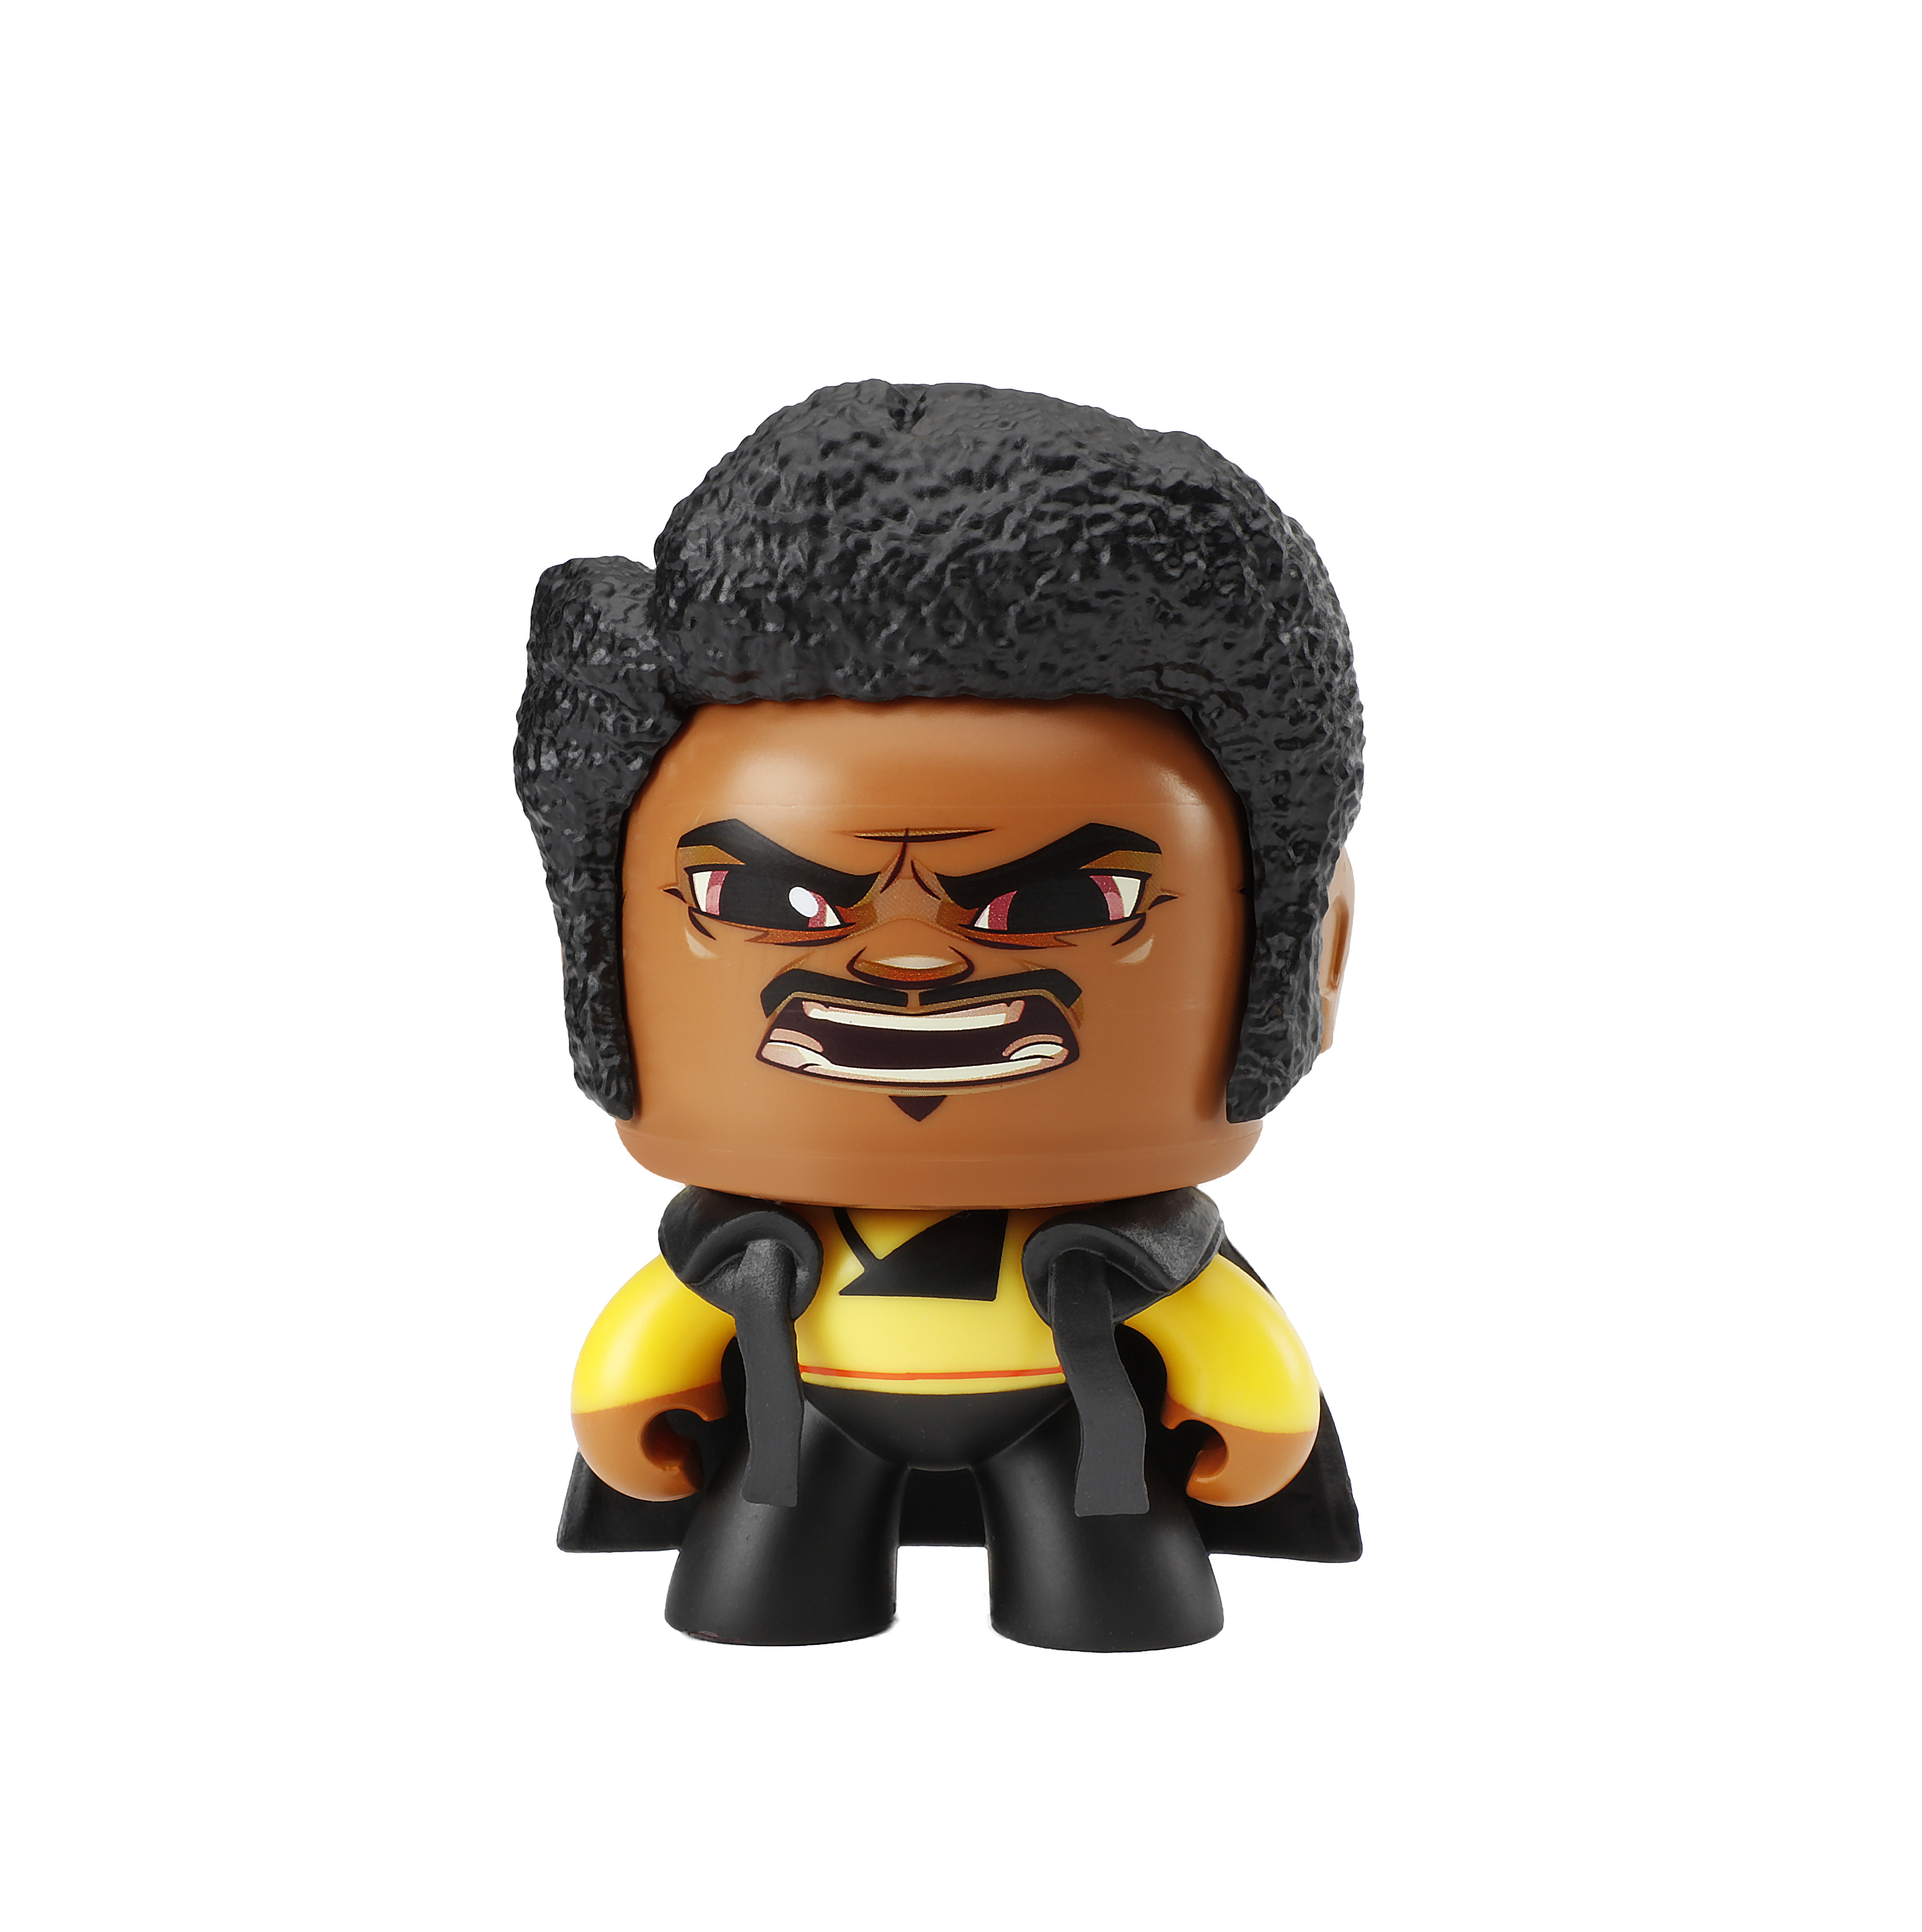 STAR WARS MIGHTY MUGGS Figure Assortment - Lando Calrissian (1)